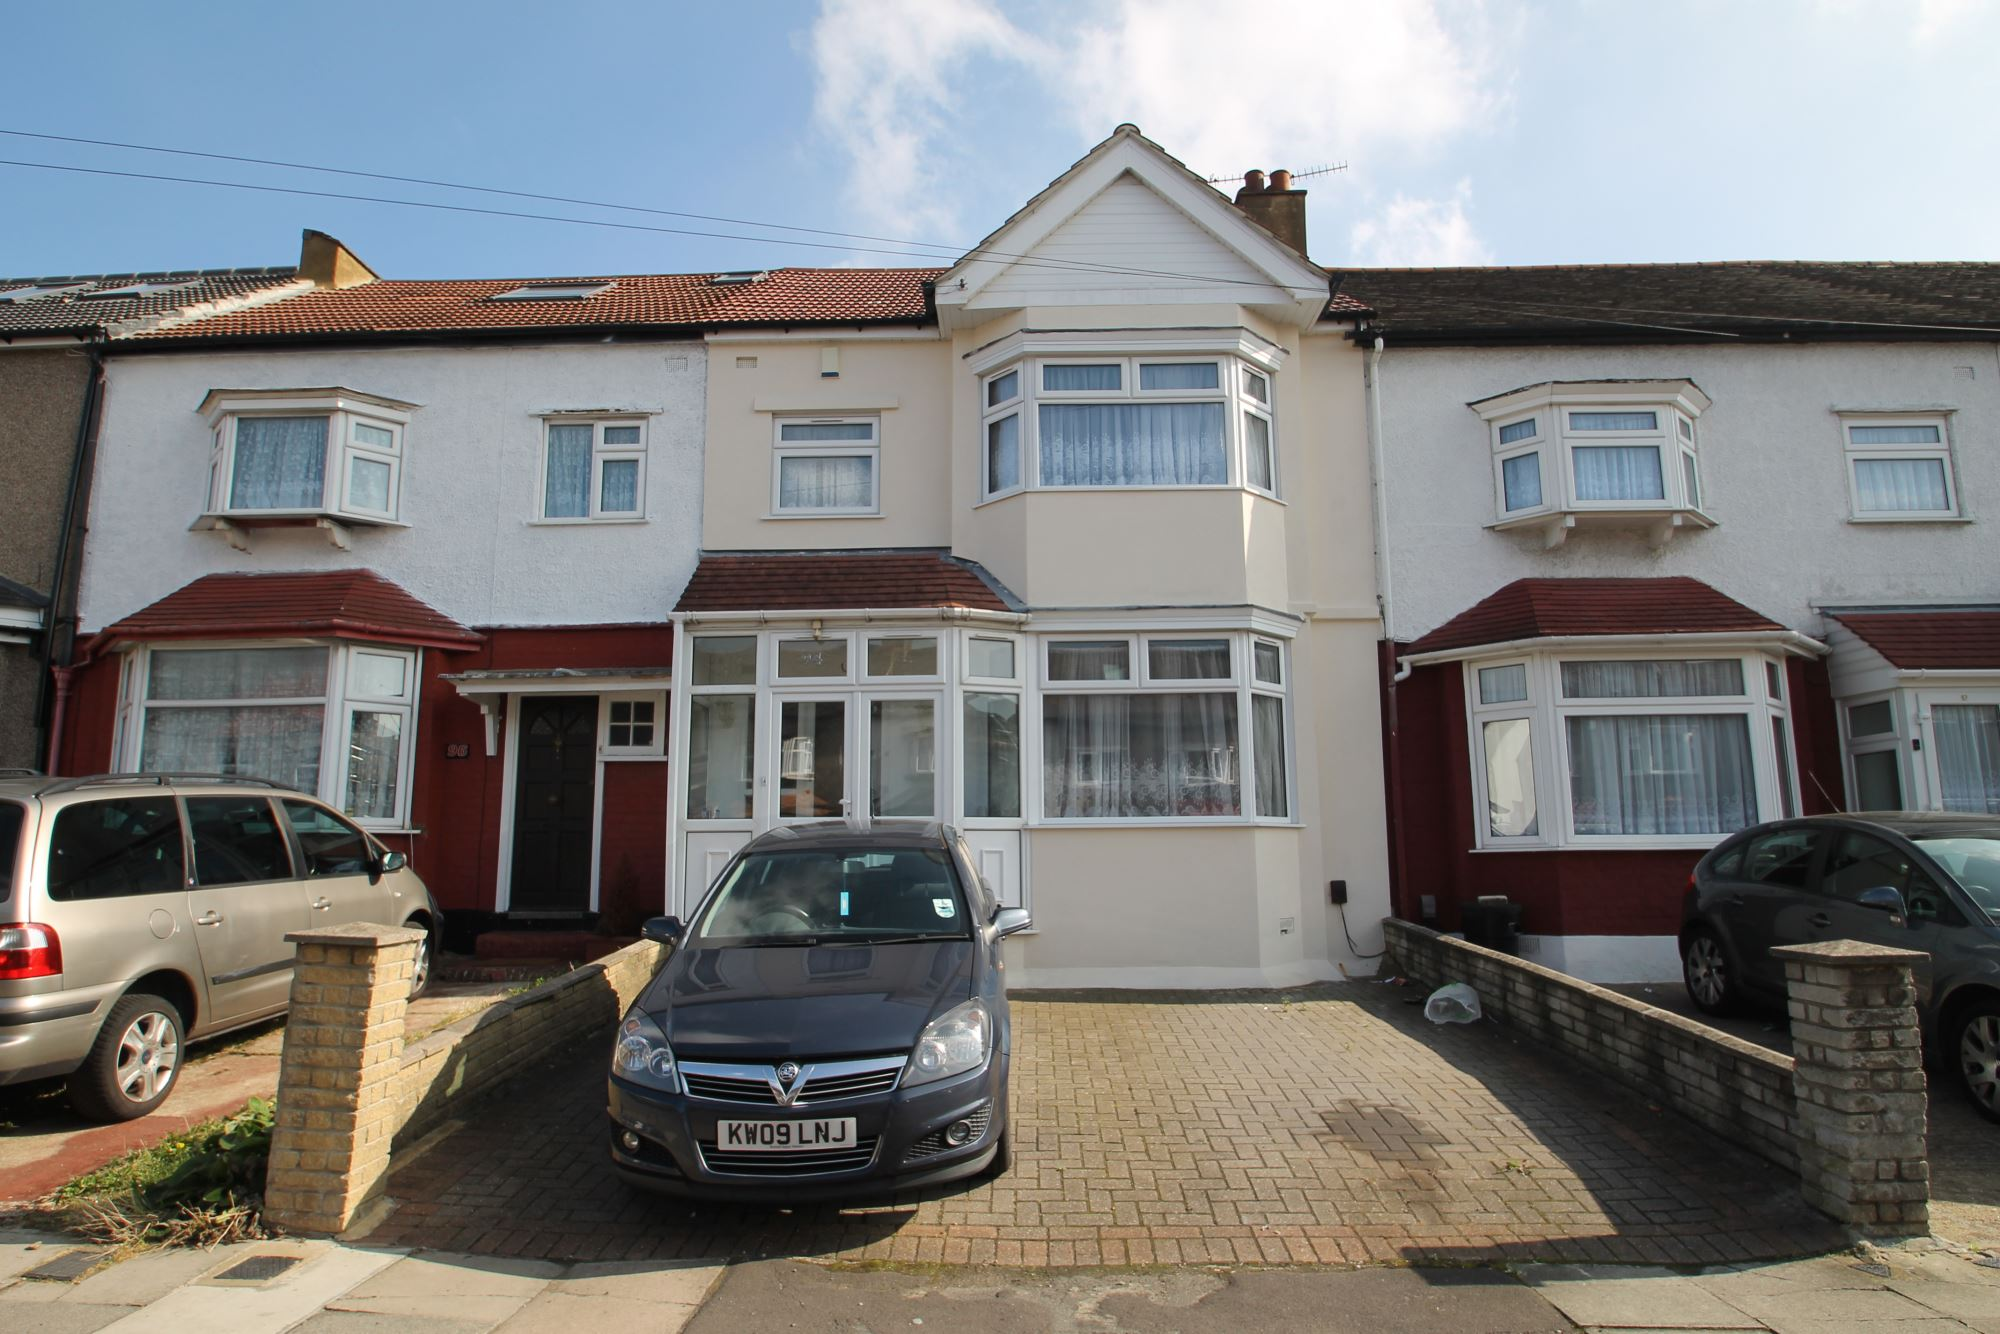 3 Bedroom Terraced House, Qubec Road, Ilford IG2 – £500,000-£525,000 Guide Price